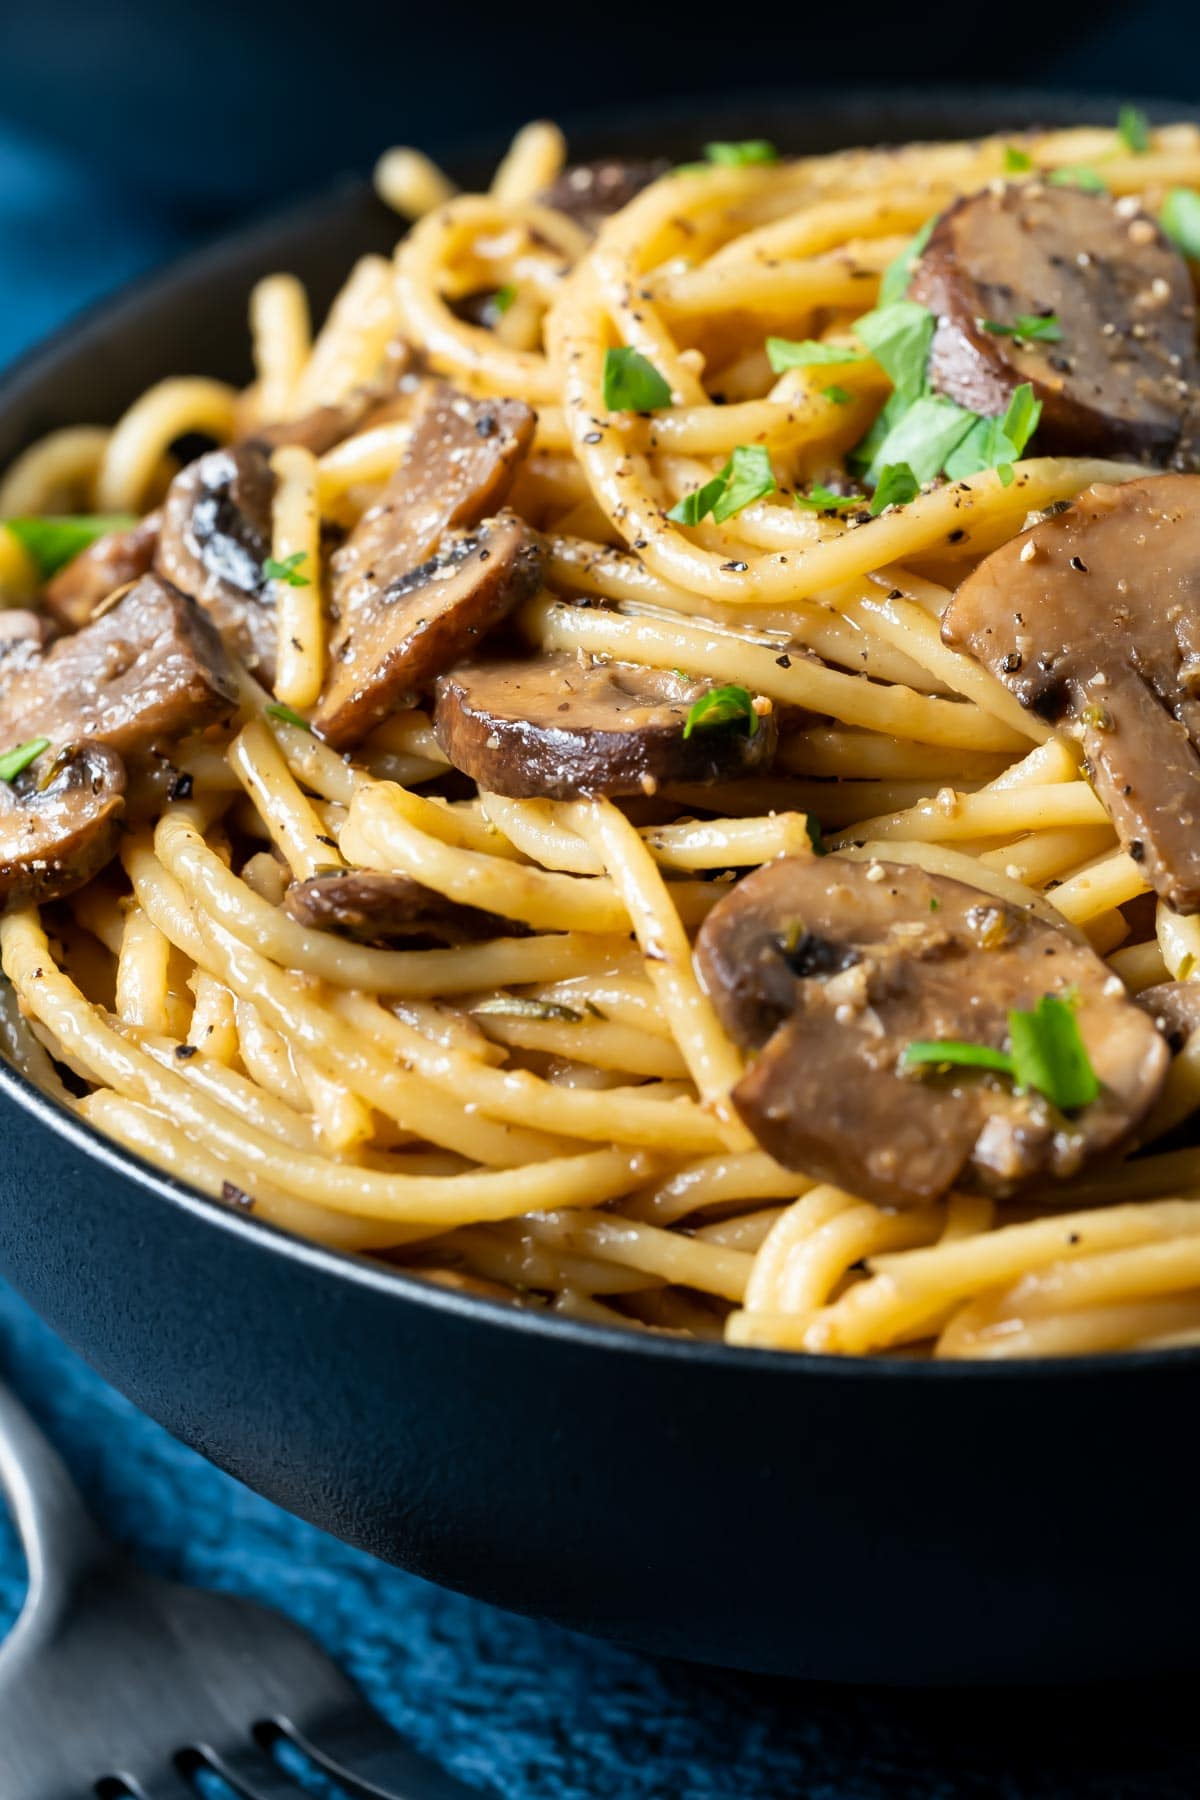 Pasta with mushrooms and fresh parsley in a black bowl.